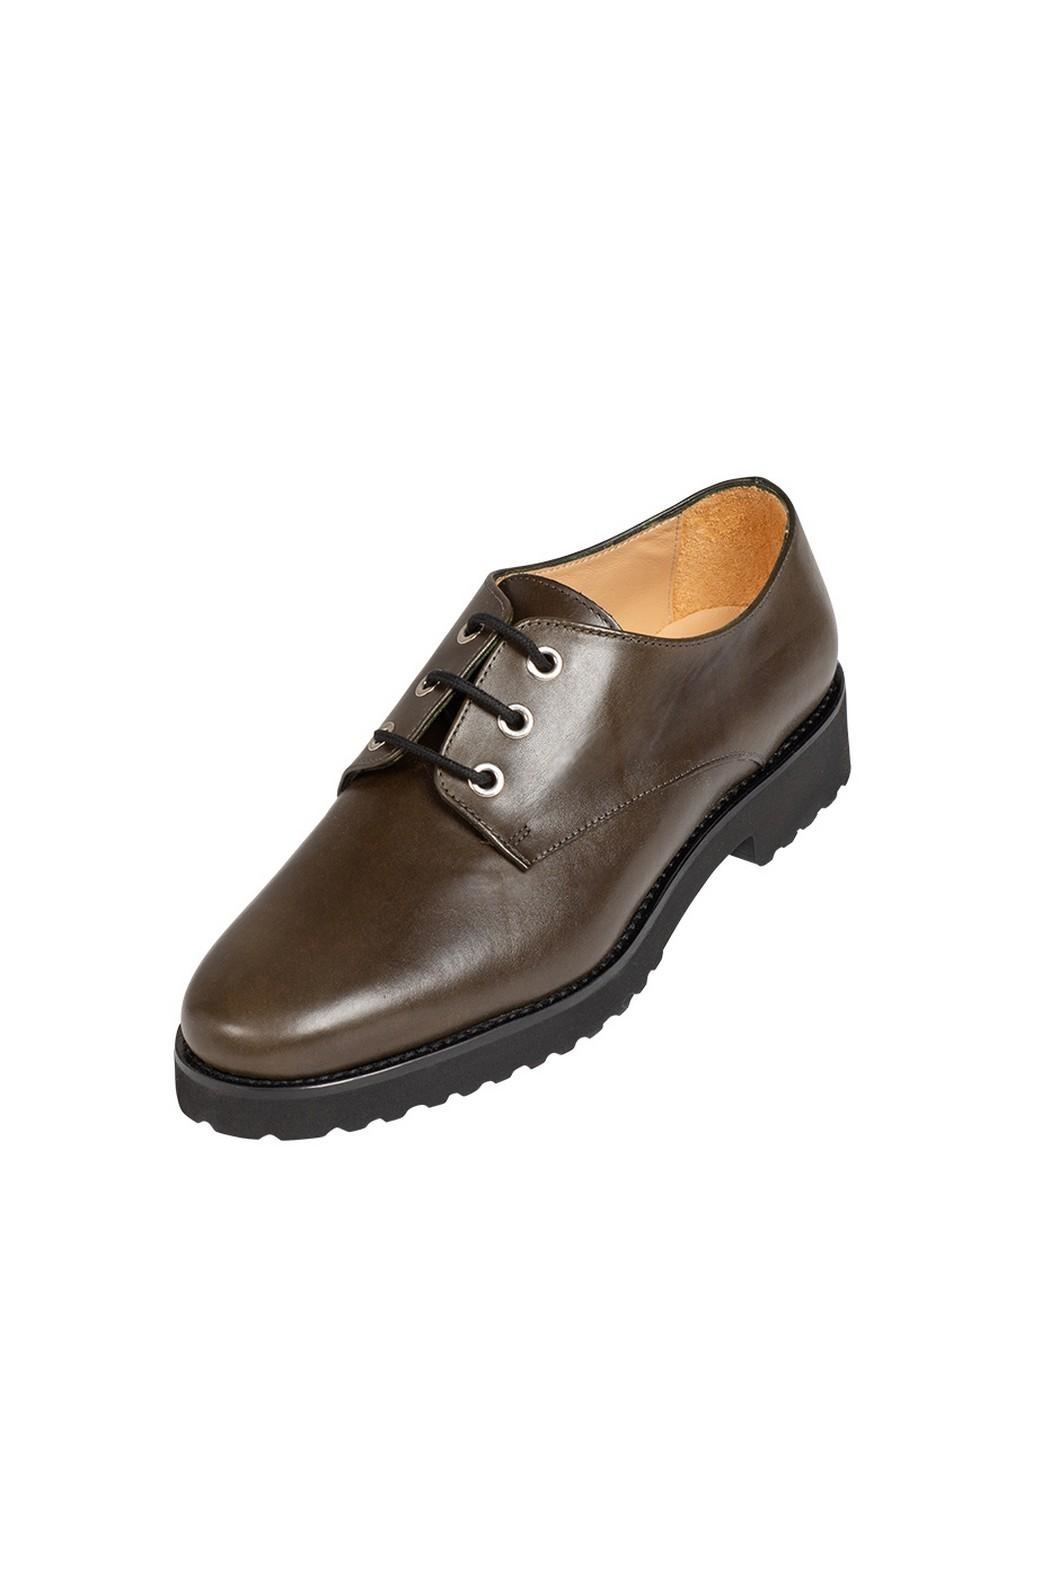 Pascucci Deep-Green, Leather, Brogue - Front Full Image